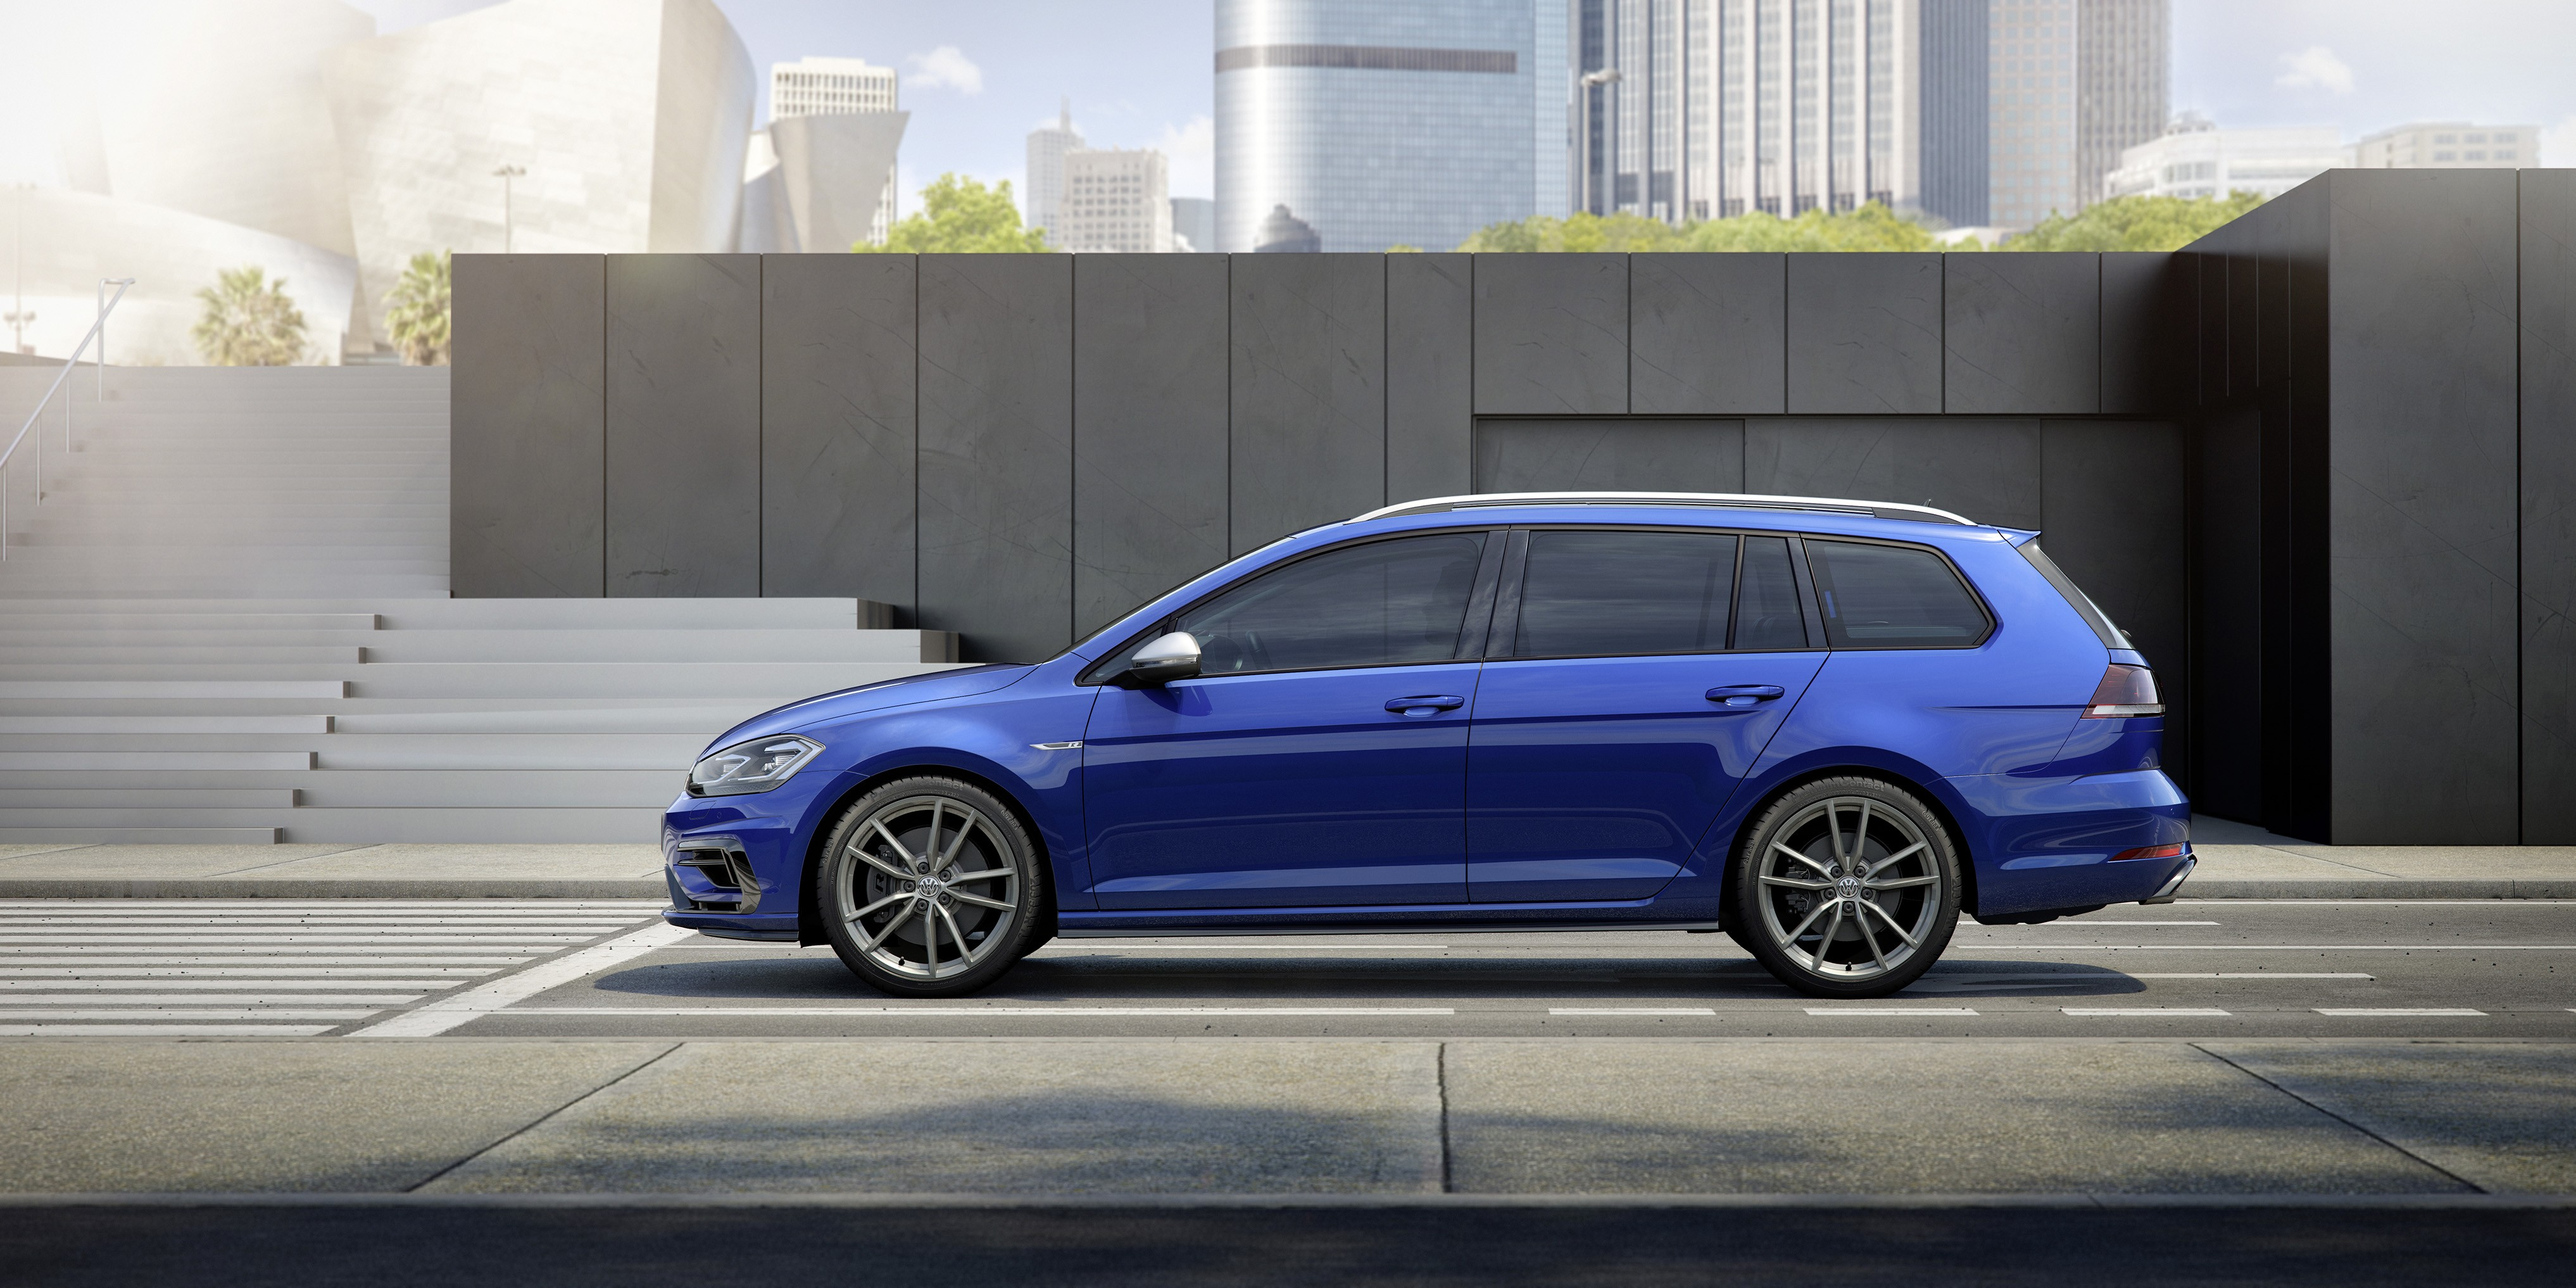 2019 Vw Golf R Variant Will Have 347 Hp And Sleek Styling